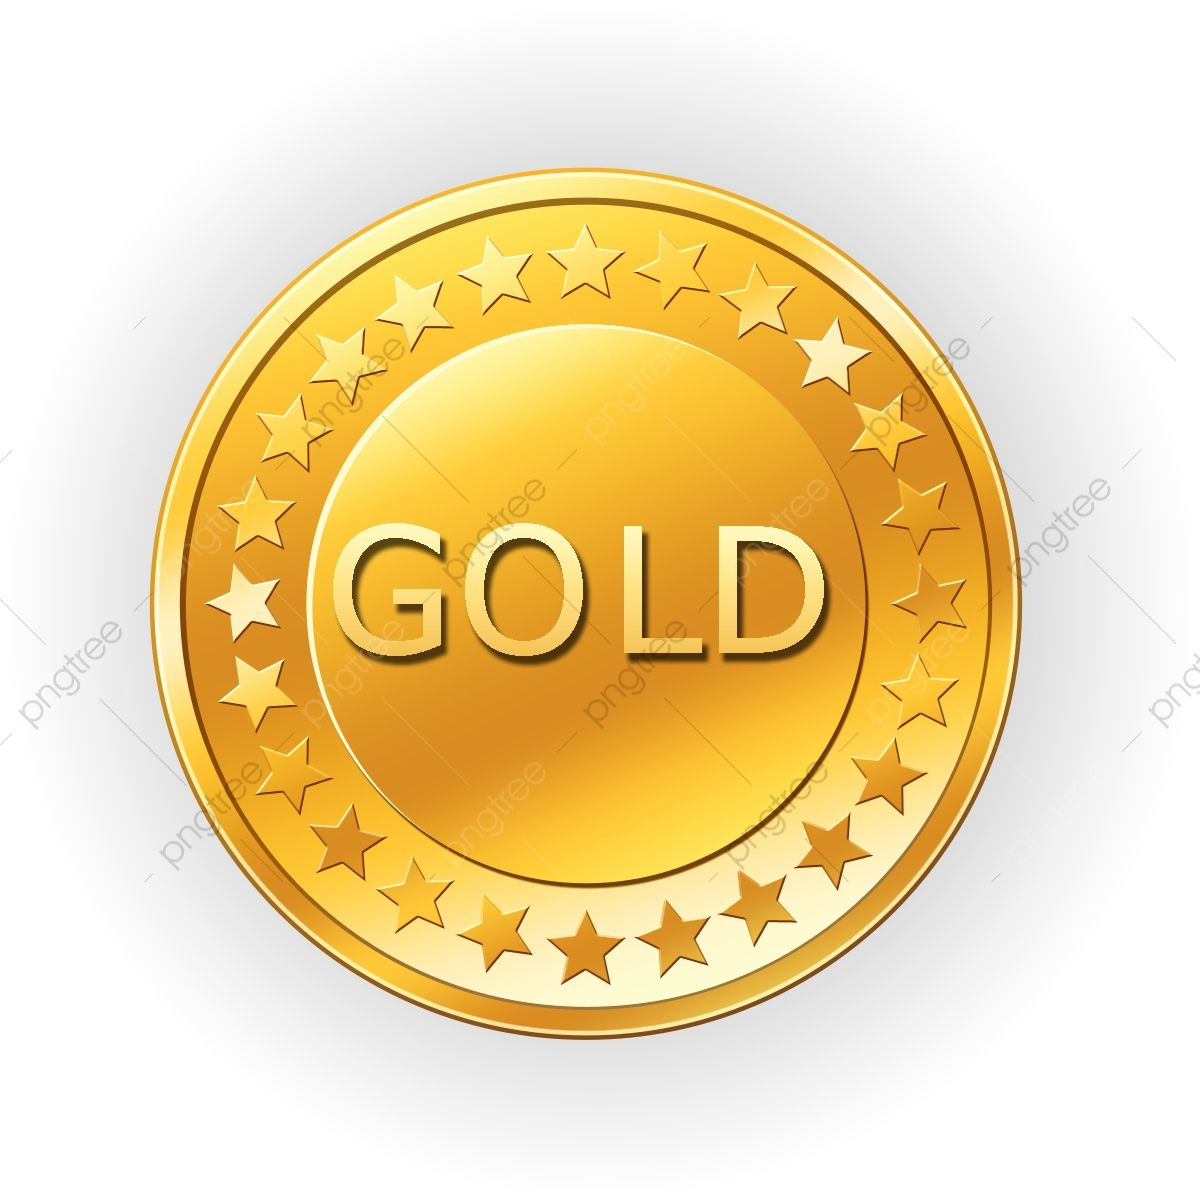 Gold Coin Gradient 2019 Png Transparent Clipart Image And Psd File For Free Download In 2021 Gold Coin Image Coin Logo Gold Coins